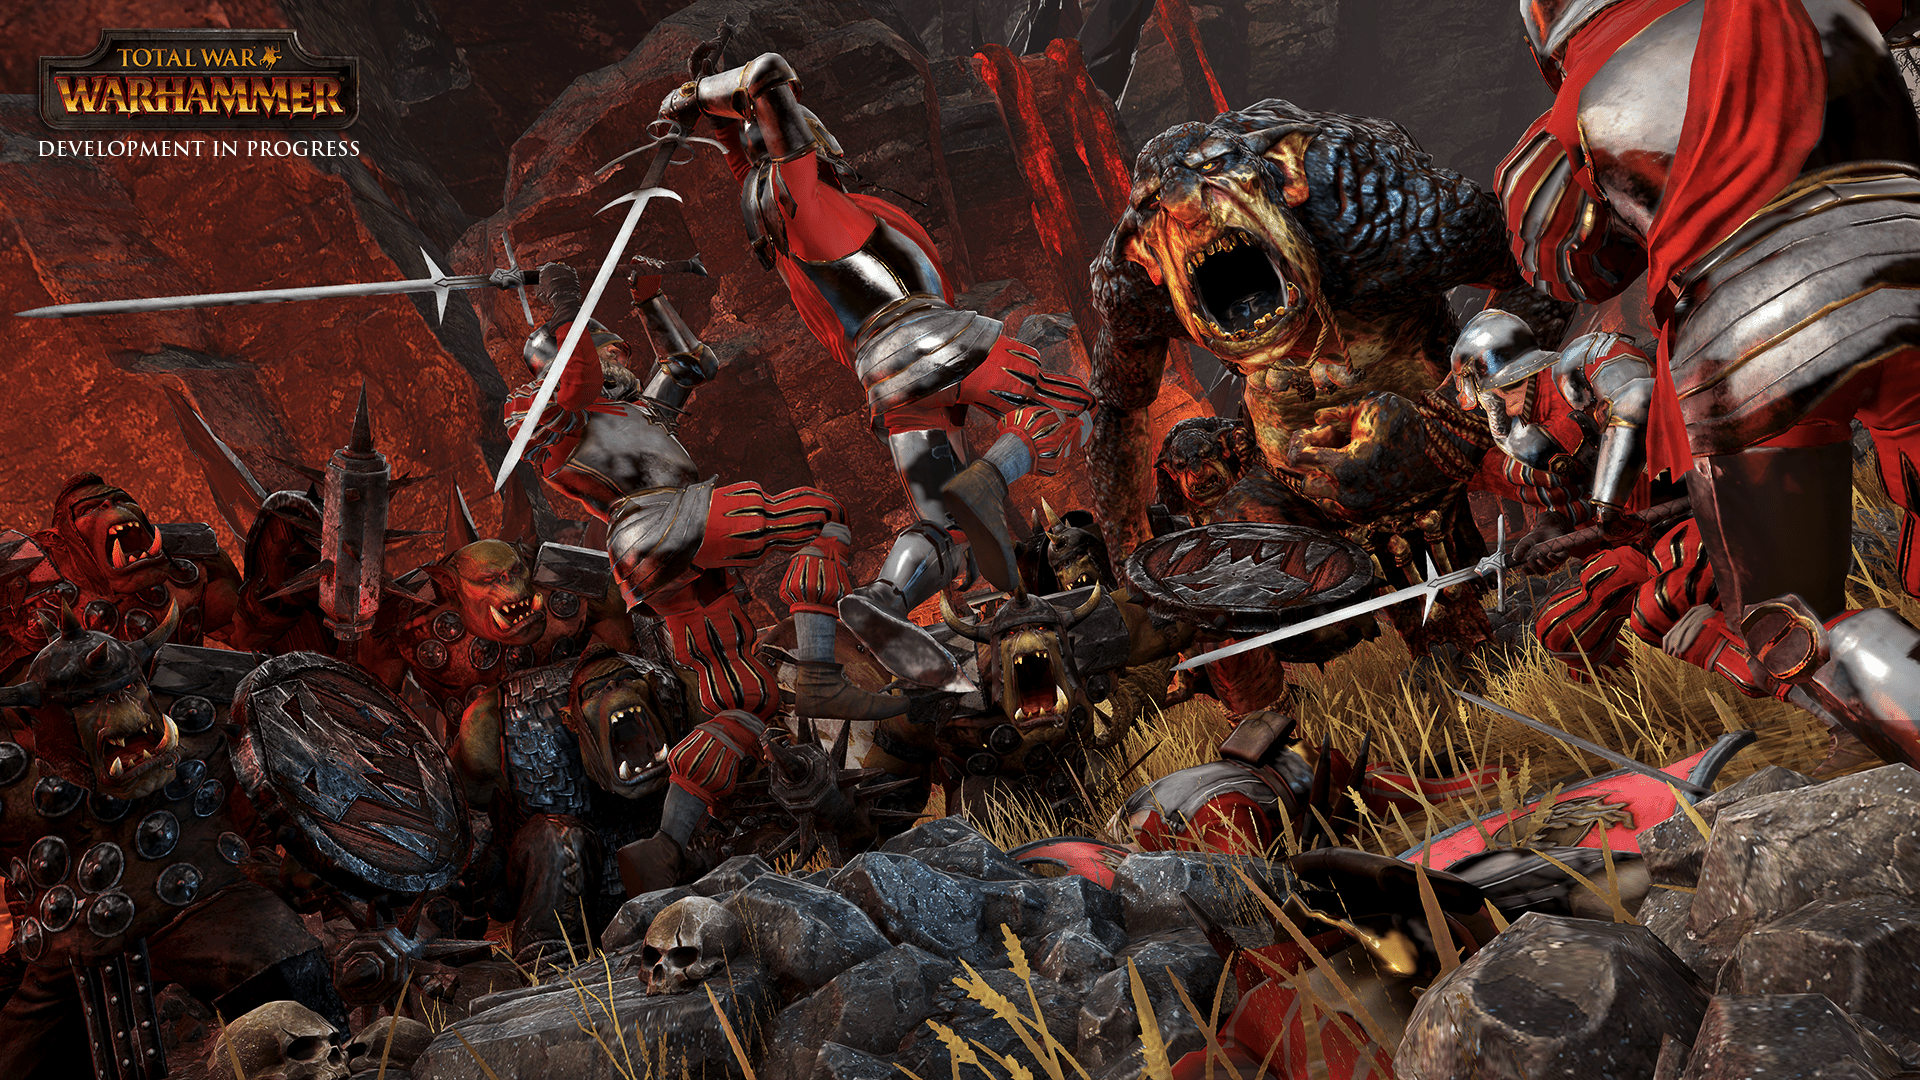 total war warhammer 56aba1945f9b58b7d009cdd8 - Complete List of Total War Series of Strategy Games